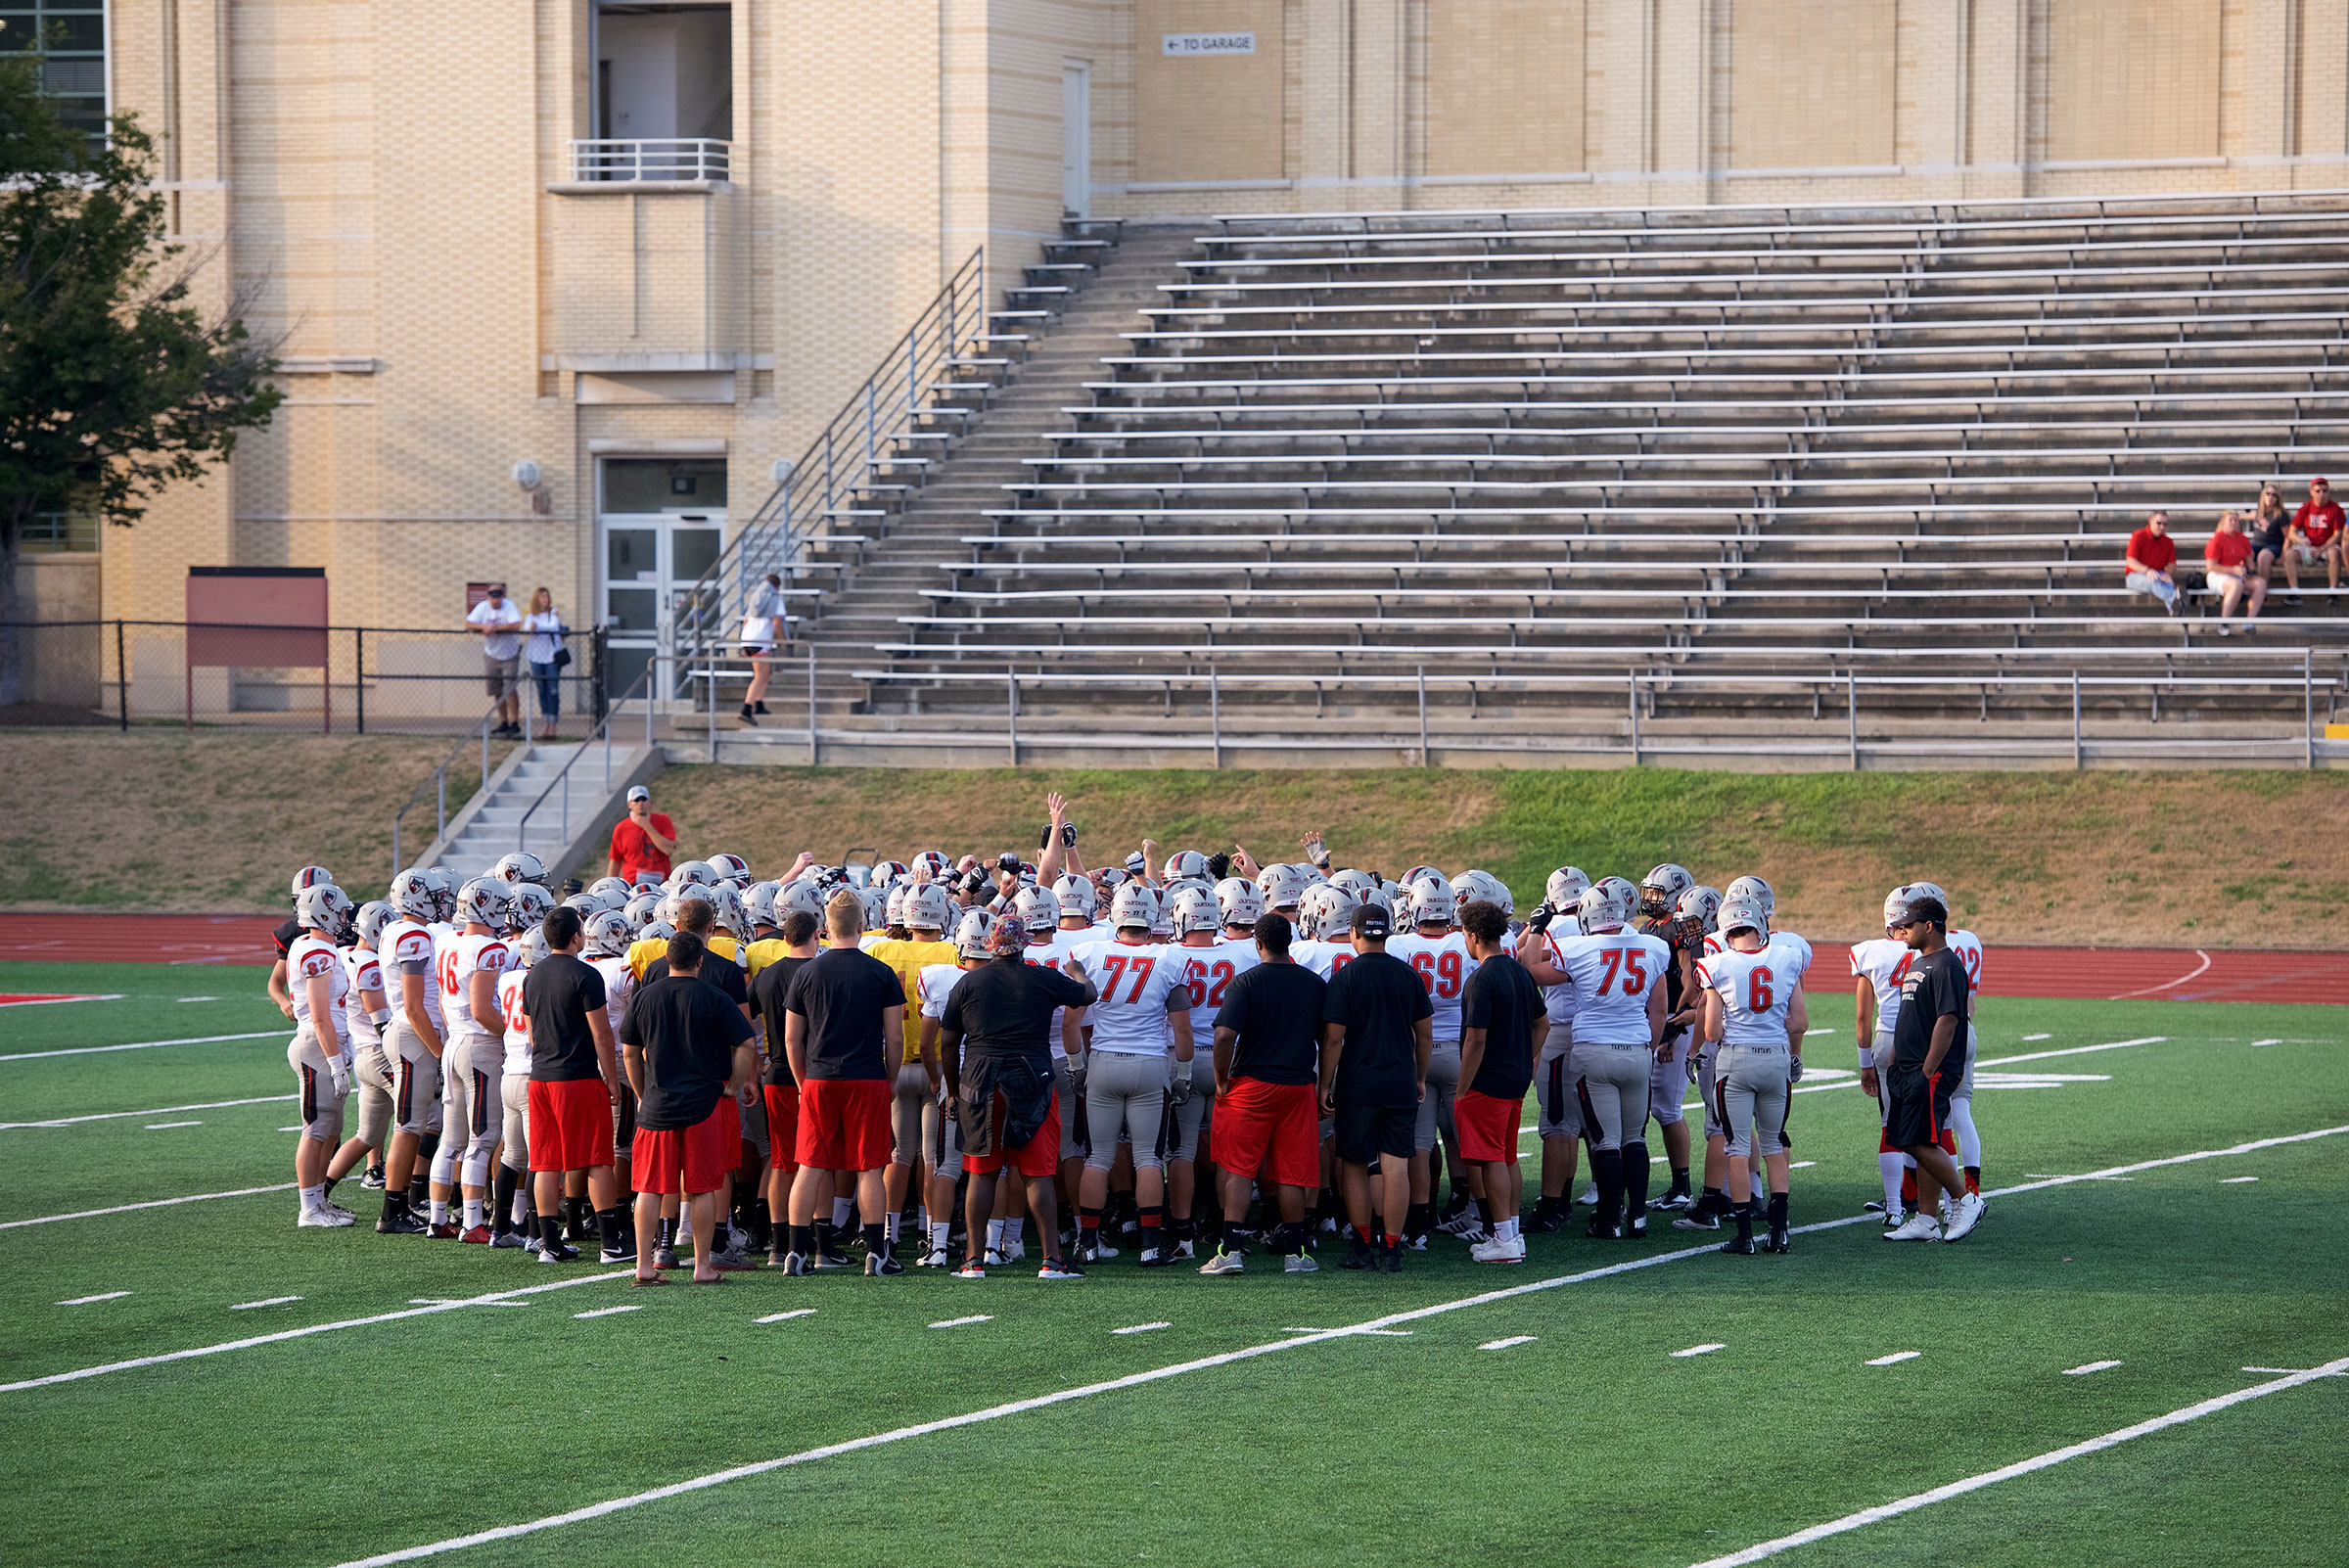 The Tartans huddle on the field at the scrimmage. (credit: Staff Photographer)